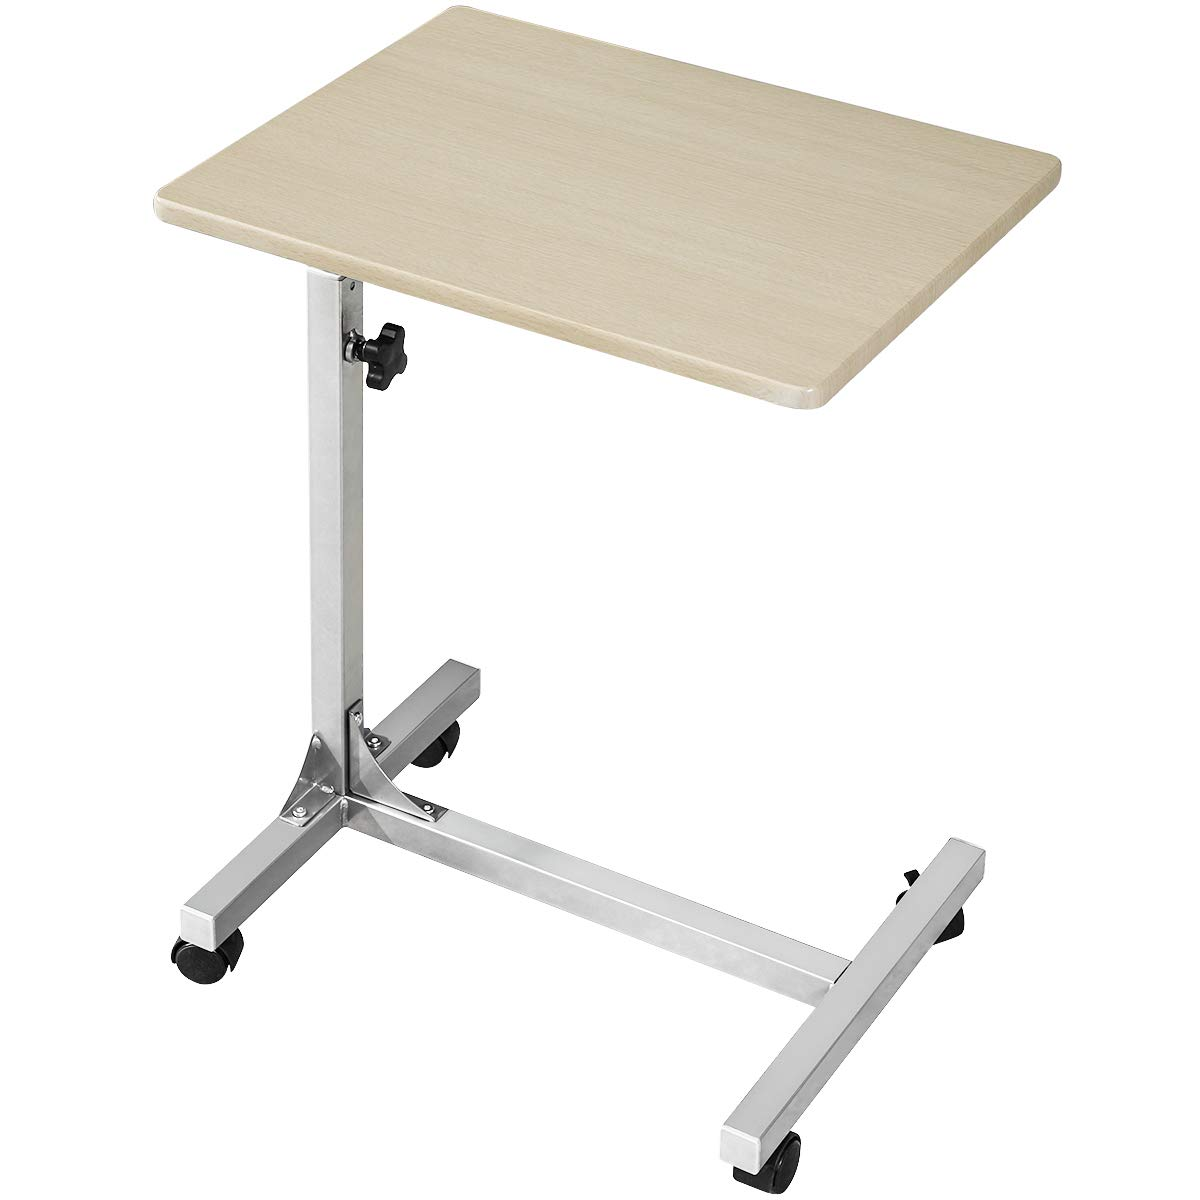 Coavas Laptop Desk Medical Adjustable Height Over Bed Table Multi-Purpose Portable Sofa Side Table with Wheels, Beech (18.9x14.6x26.4-31.1 inch) by Coavas